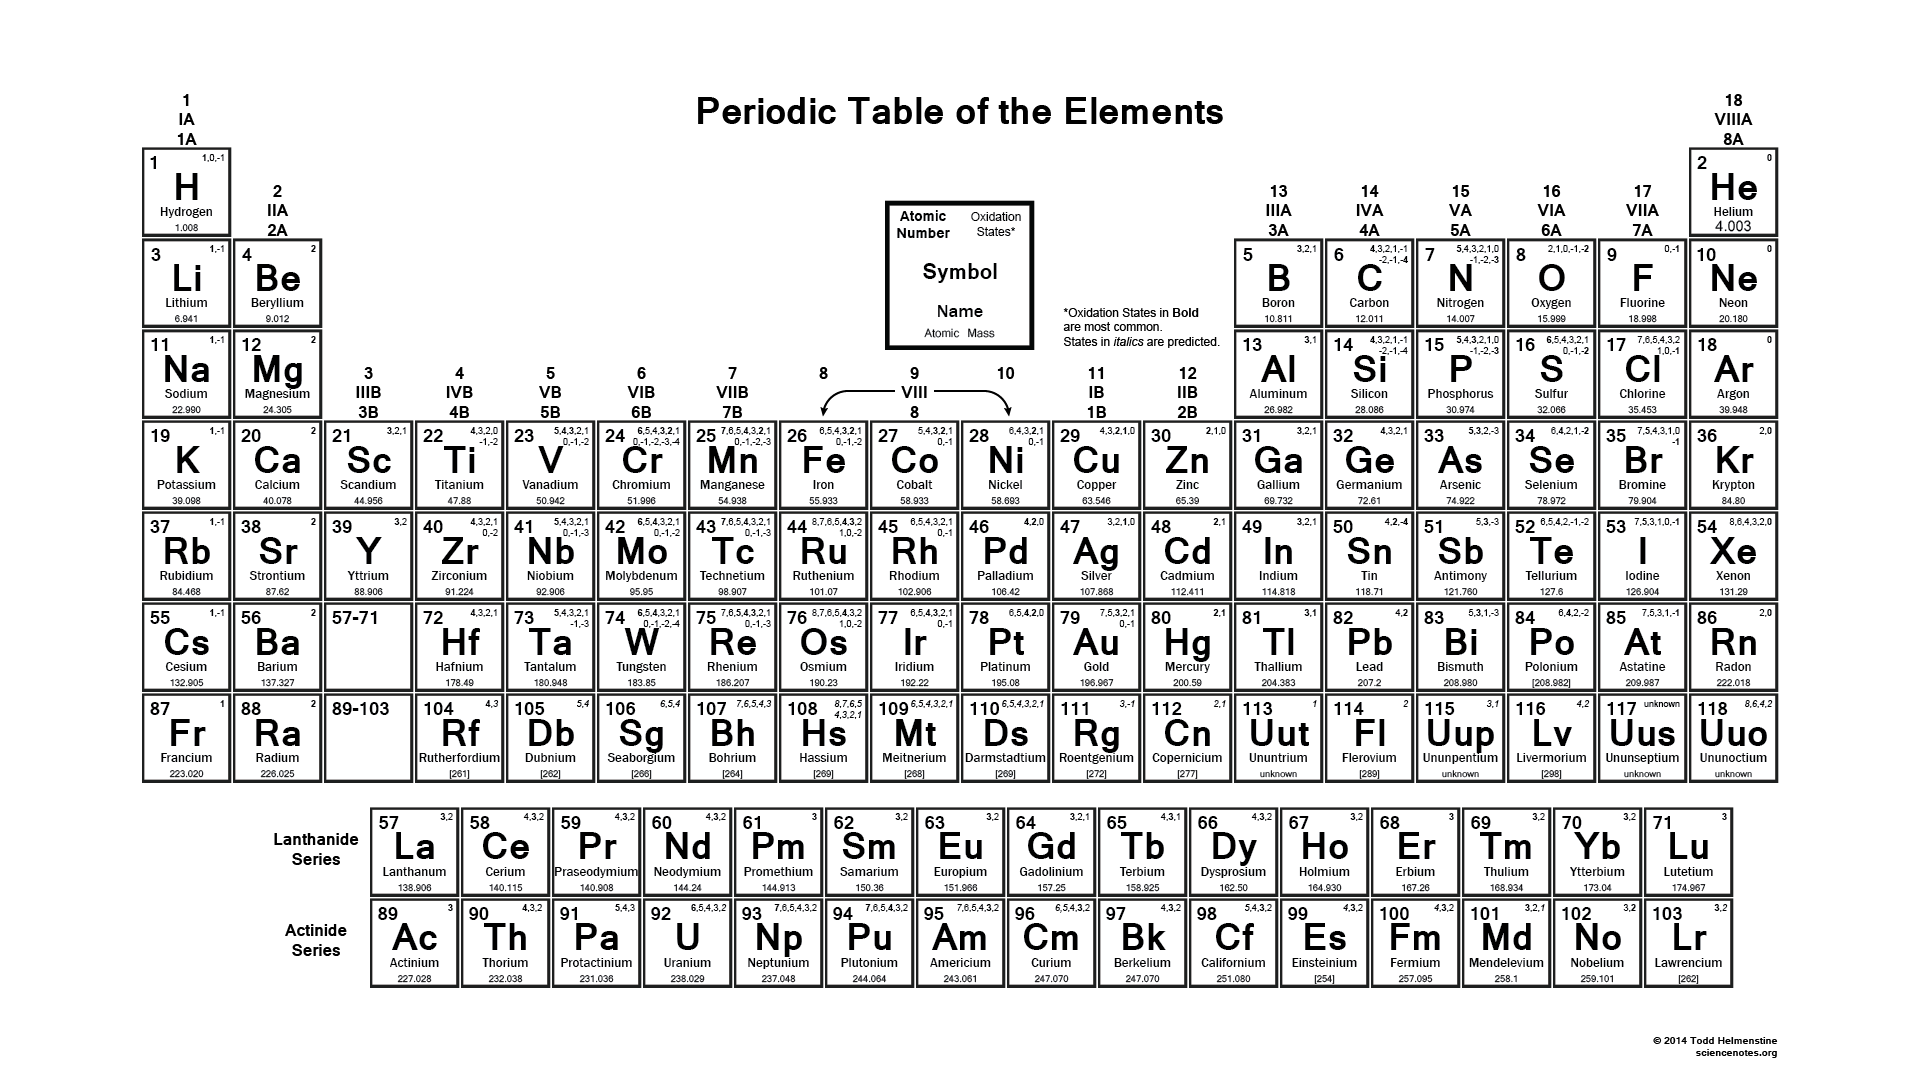 Printable periodic table oxidation states click for full size gamestrikefo Choice Image